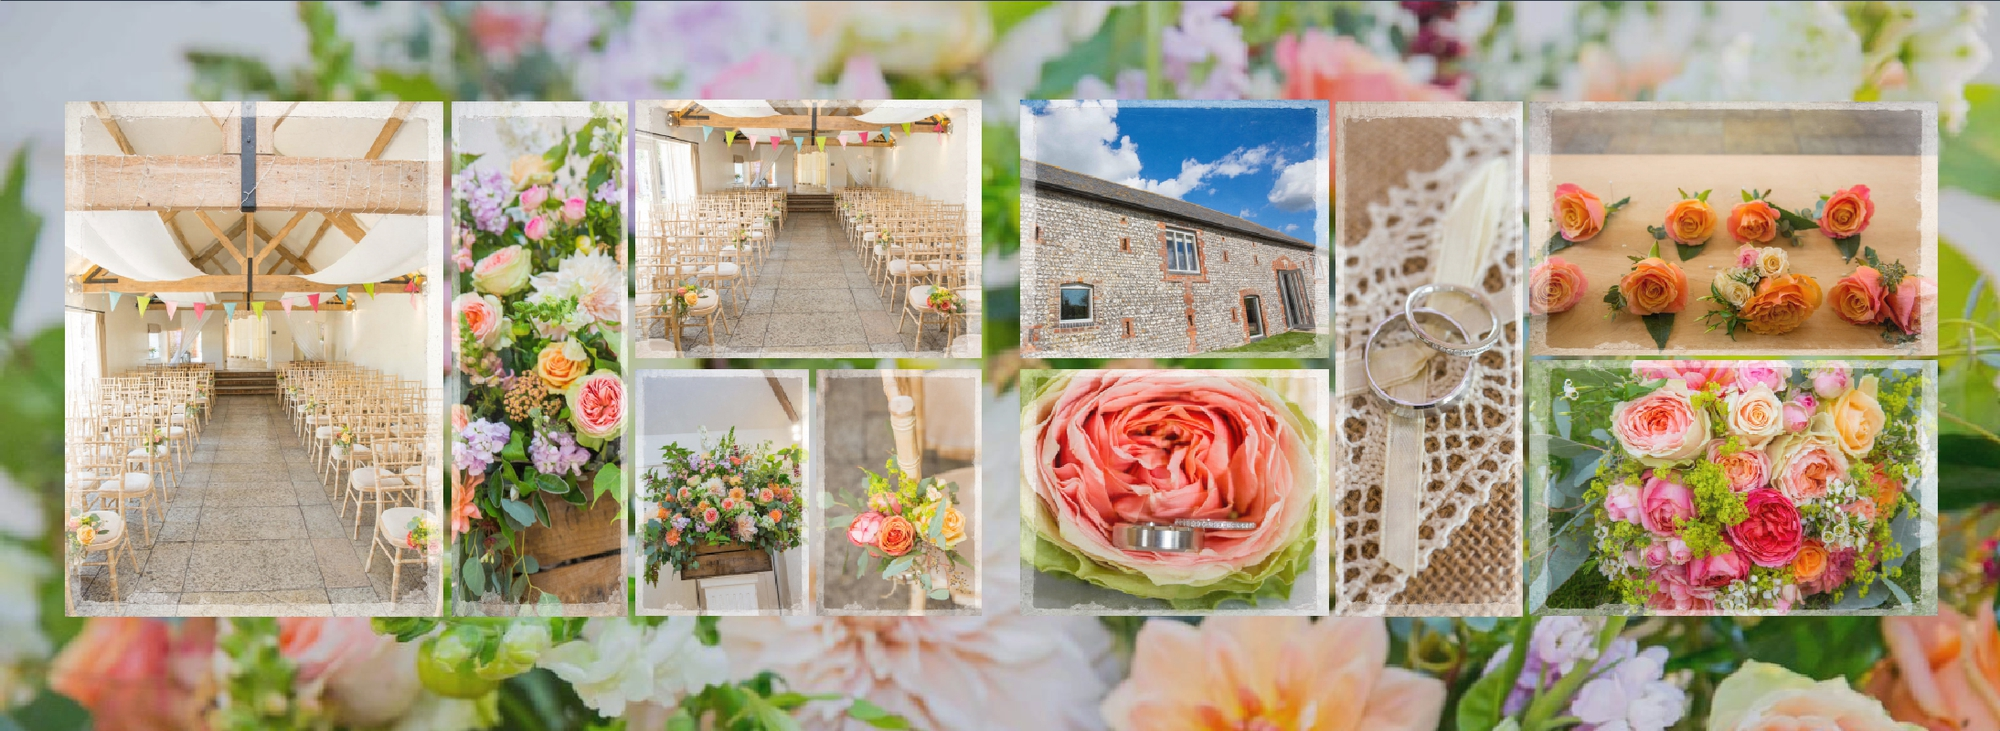 Farbridge venue Wedding photographer Kimberley